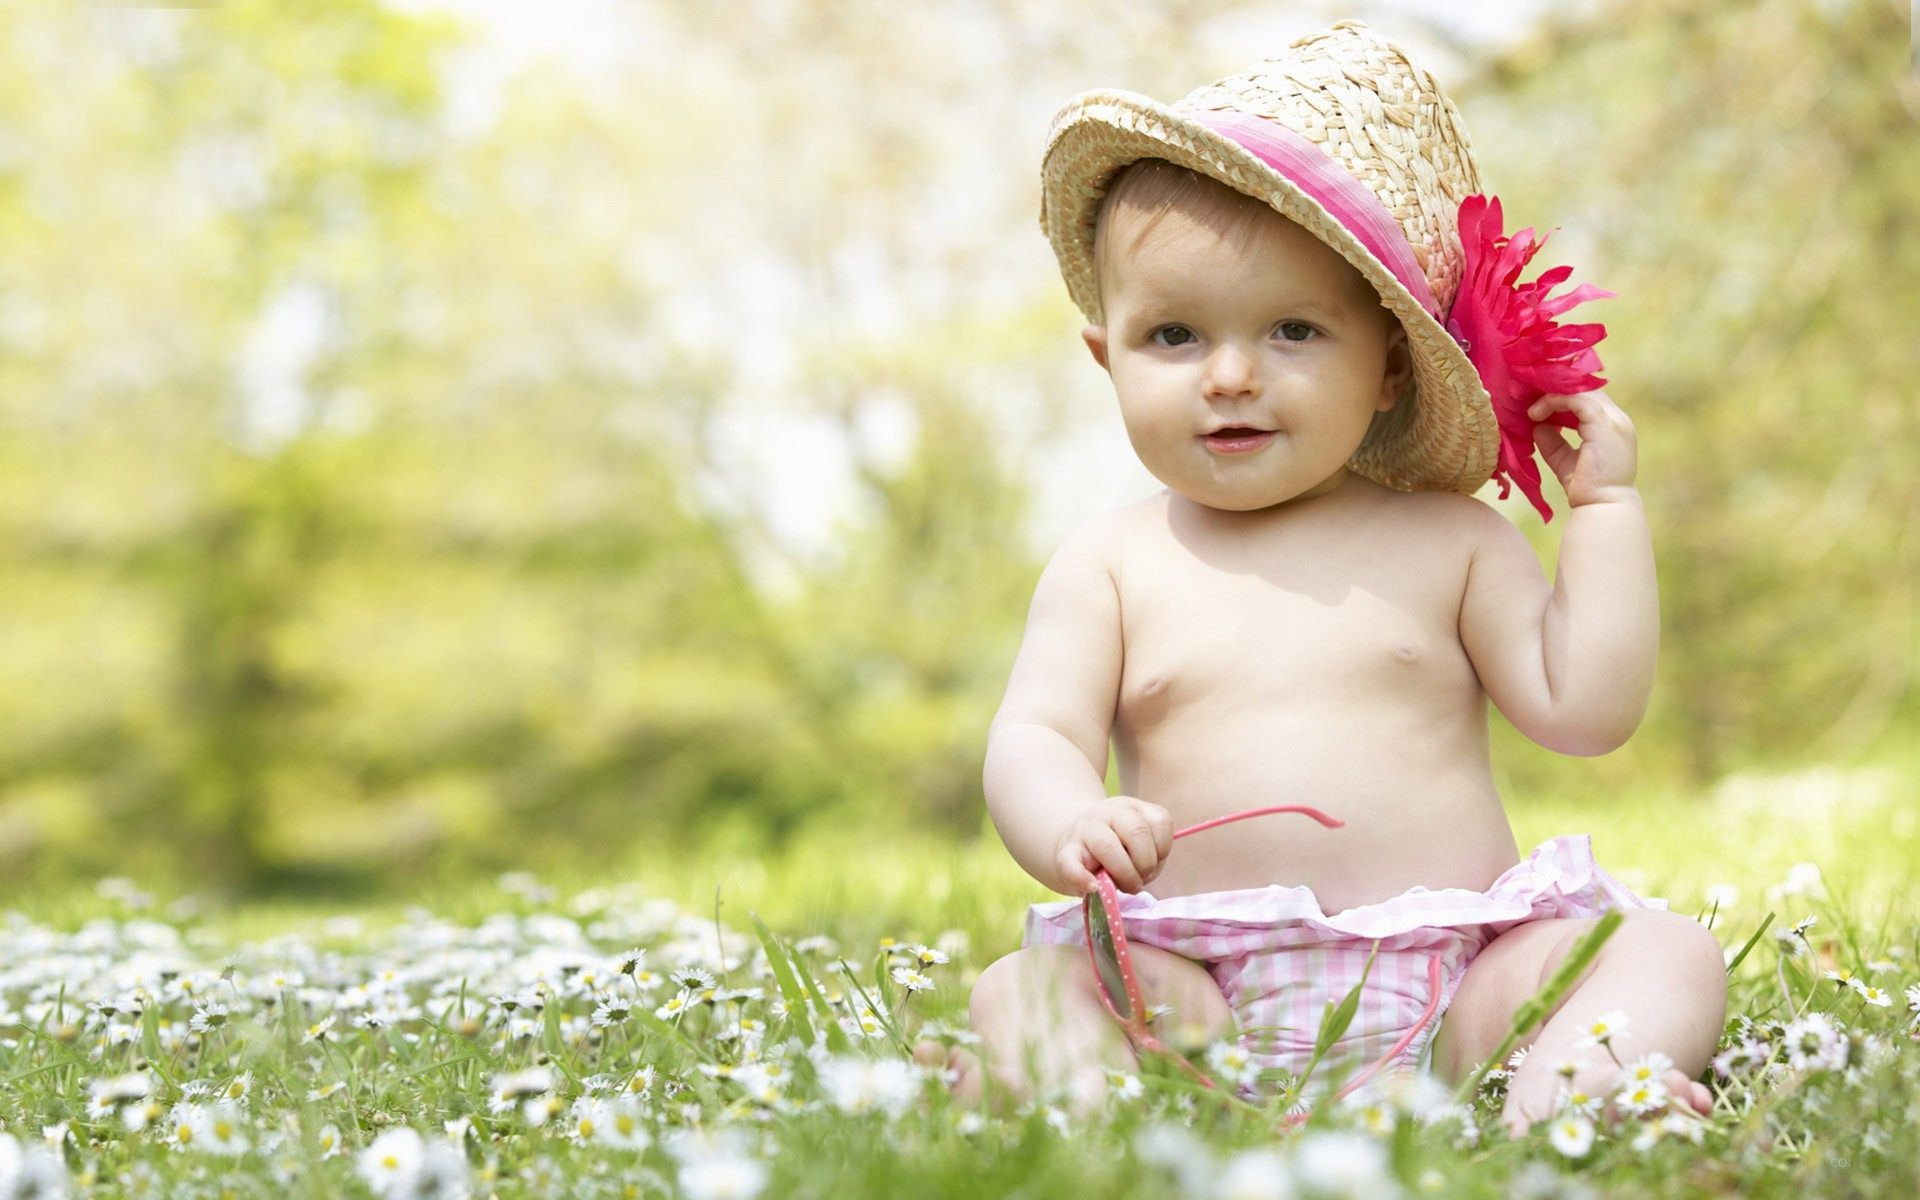 cute girl babies wallpapers free download | babies | pinterest